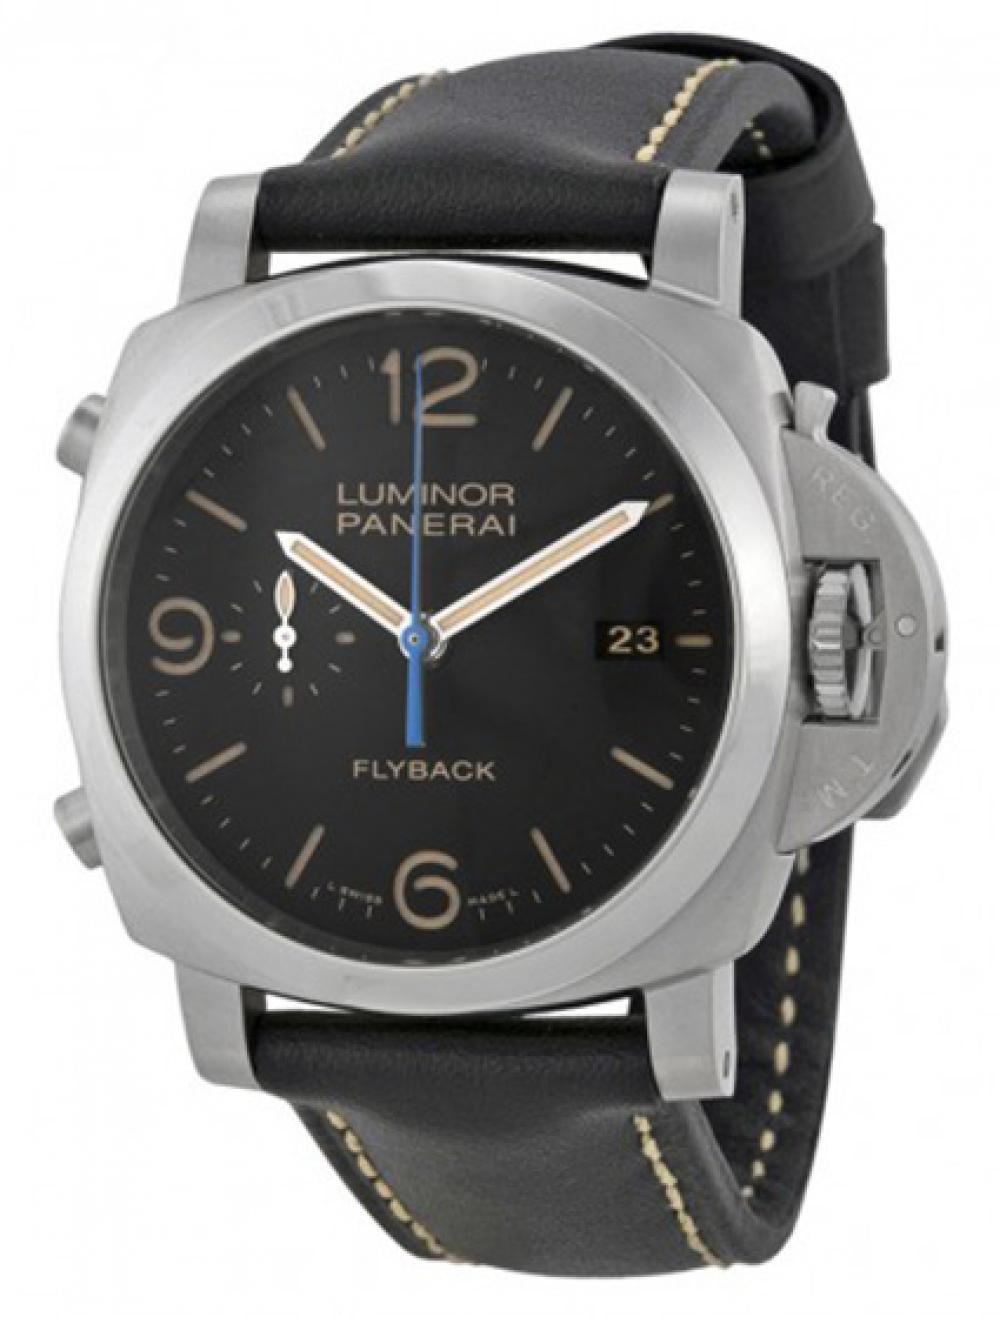 OFFICINE PANERAI LUMINOR 1950 44 MM 3 DAYS CHRONO FLYBACK PAM00524